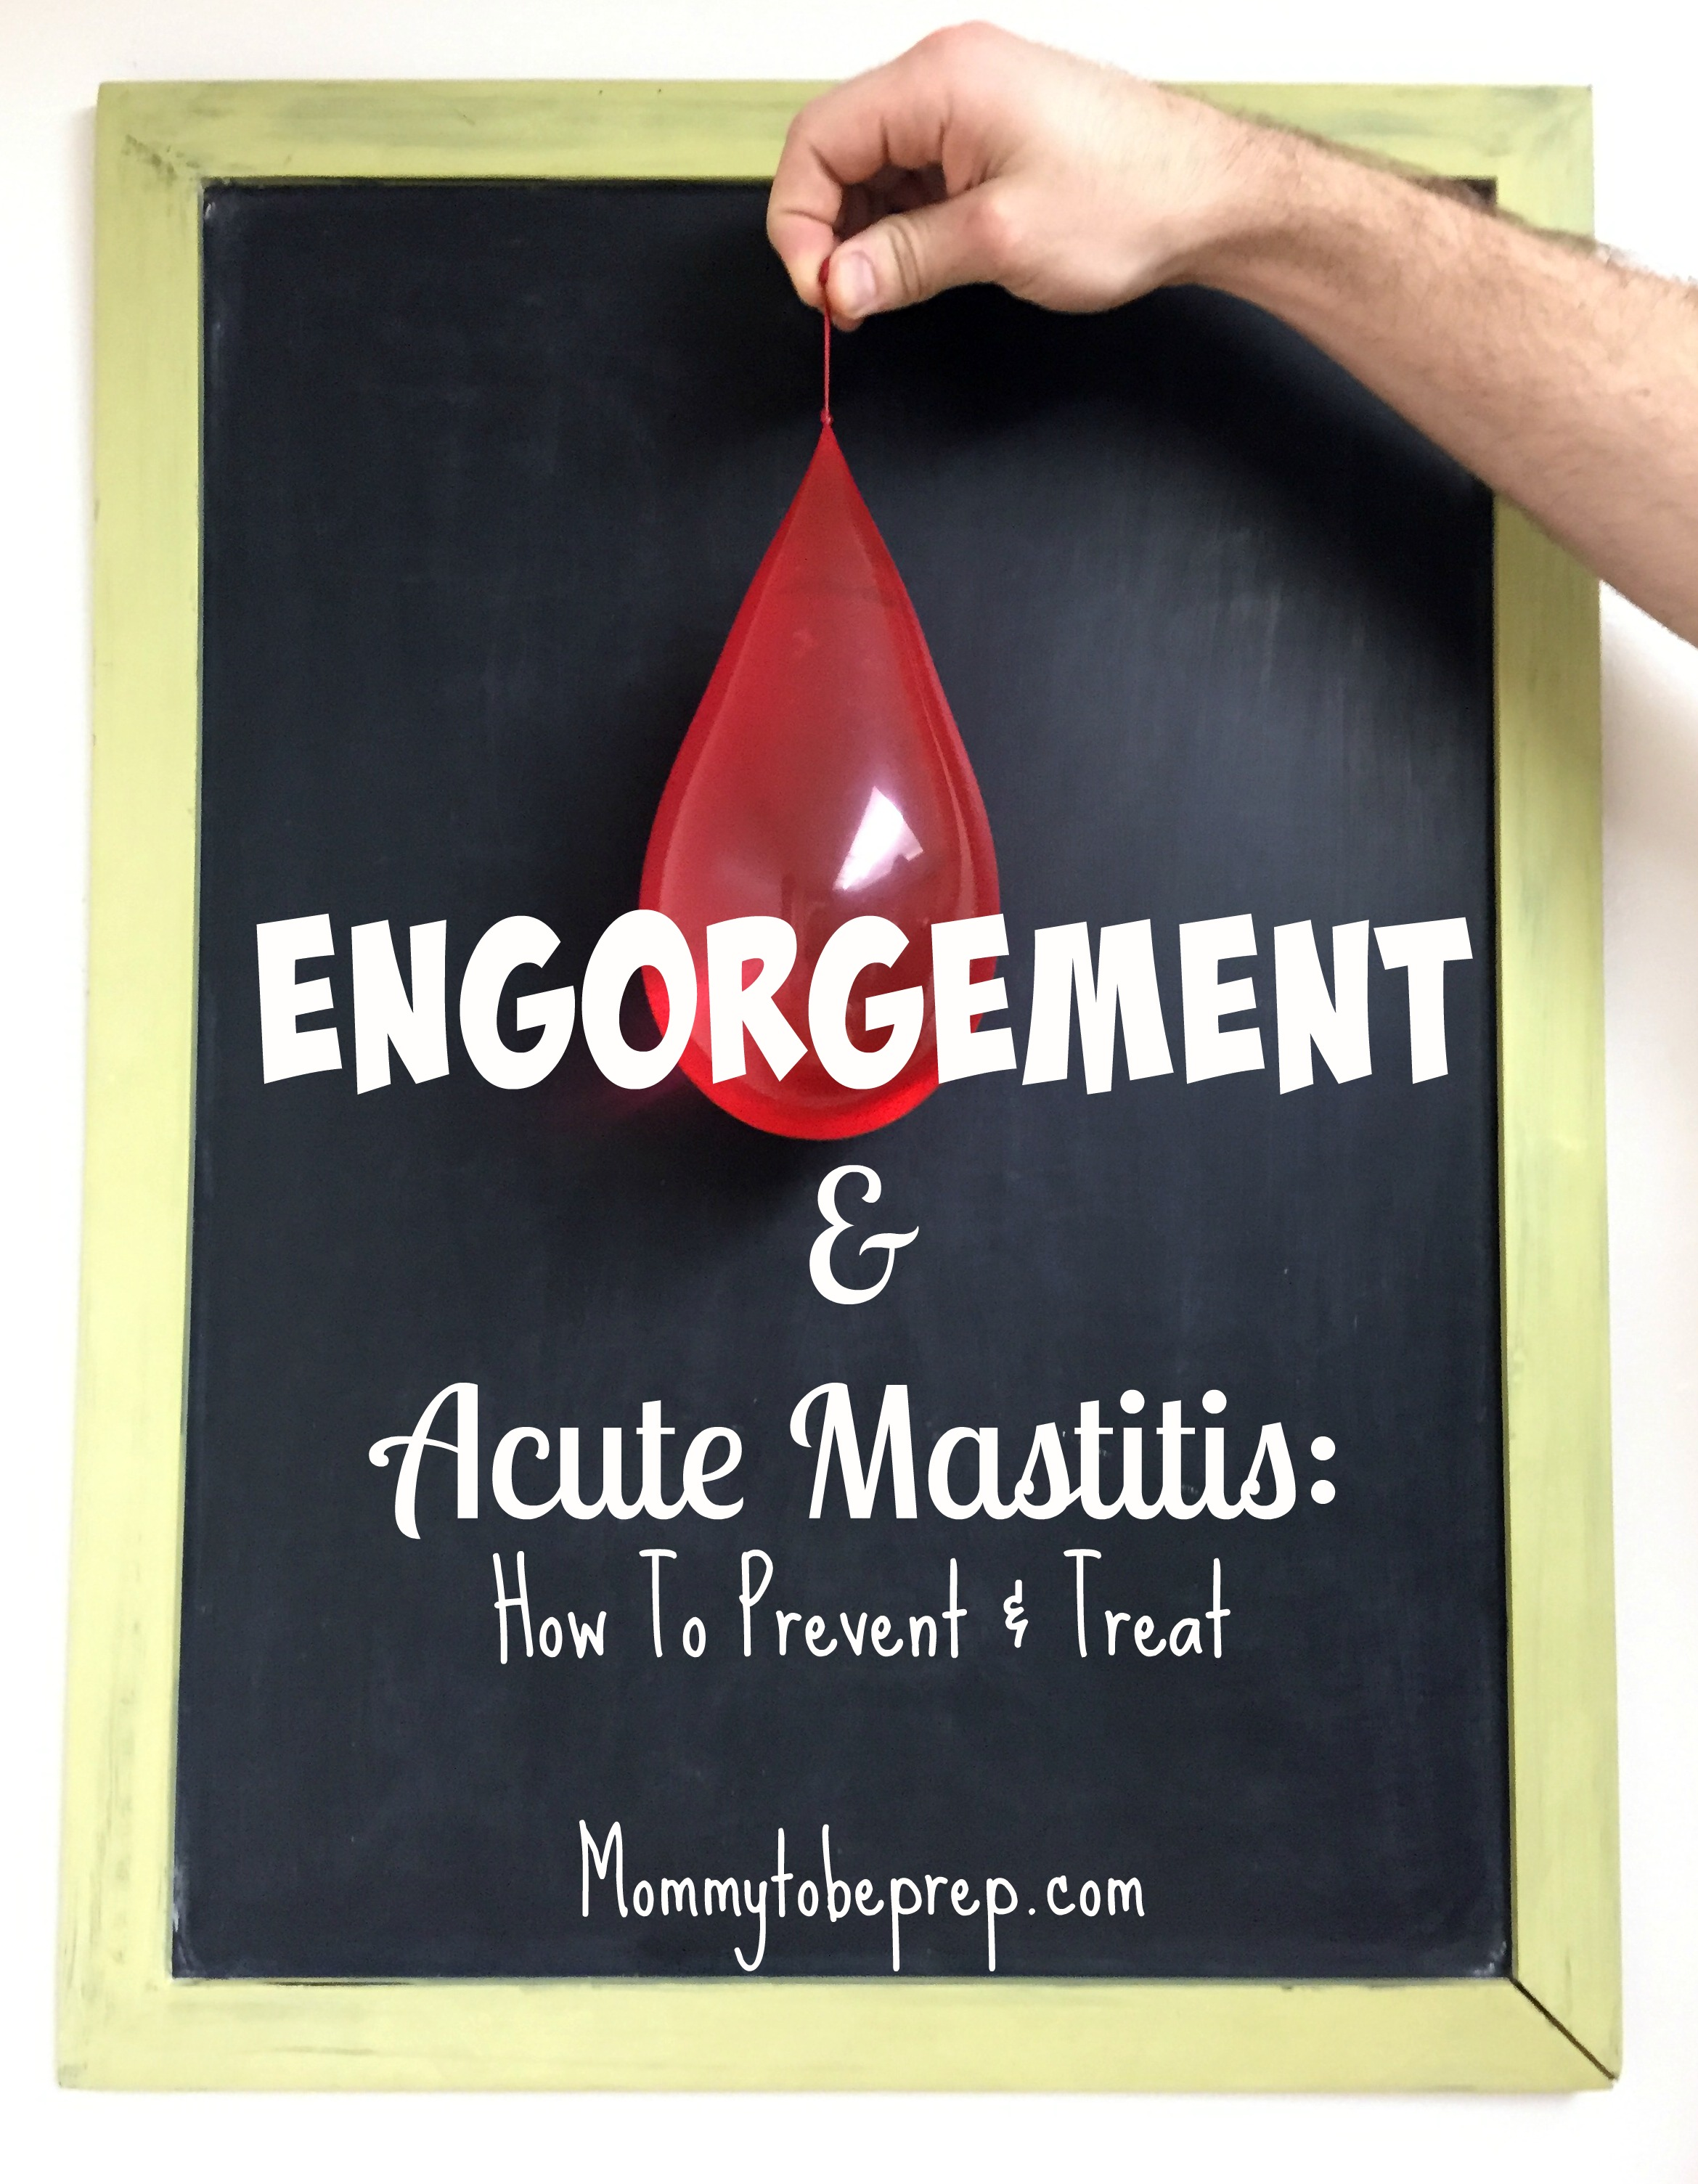 Engorgement & Acute Mastitis: How to Prevent & Treat